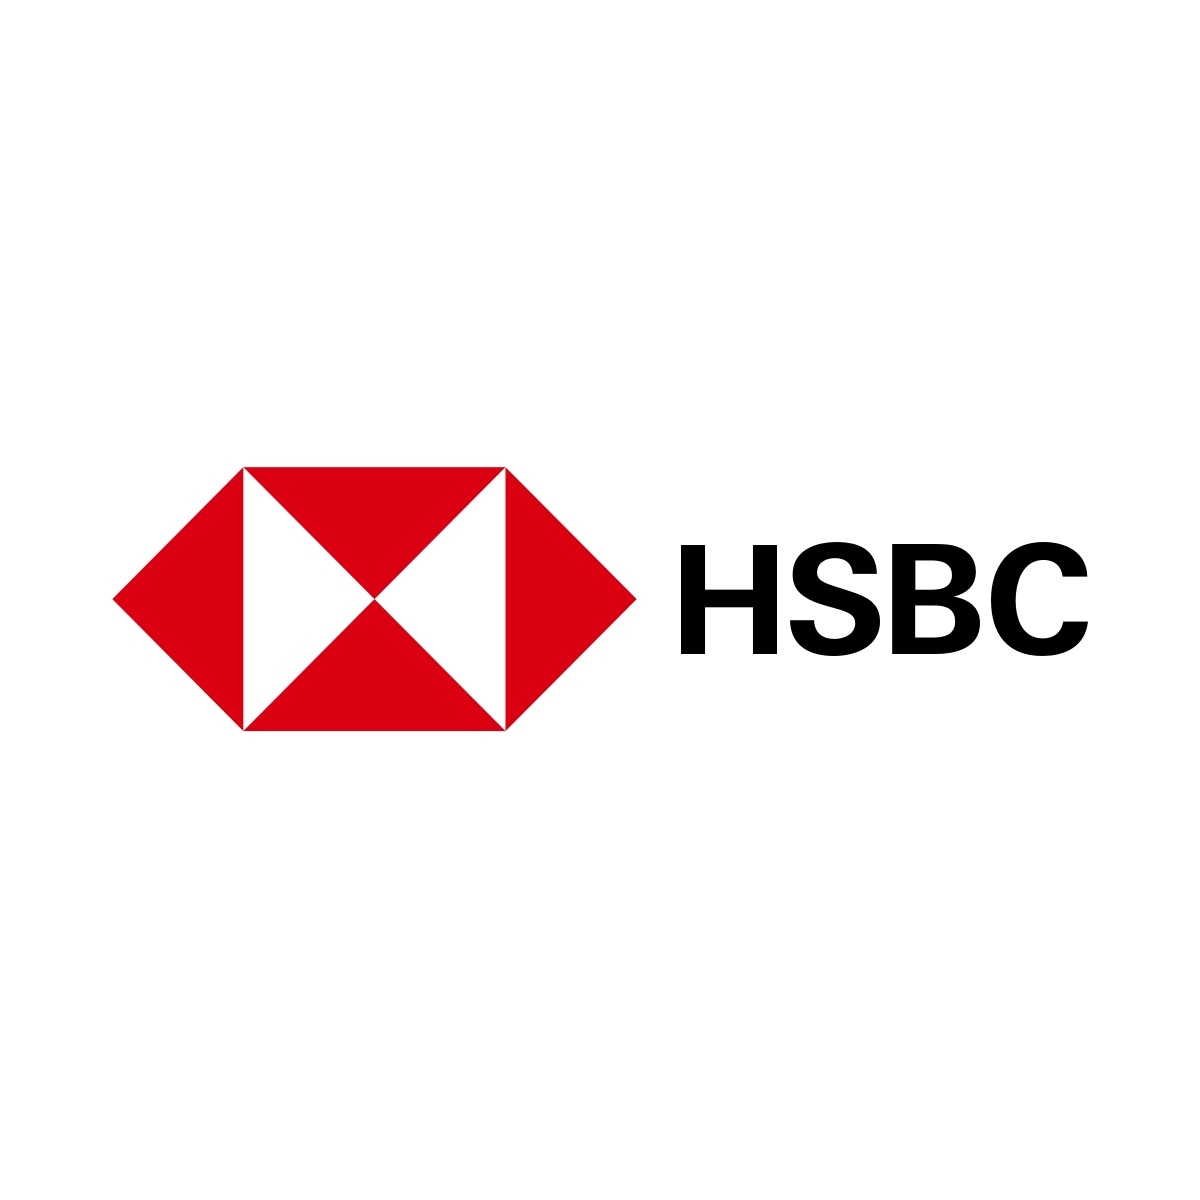 hsbc contacts & customer service - hsbc bank usa